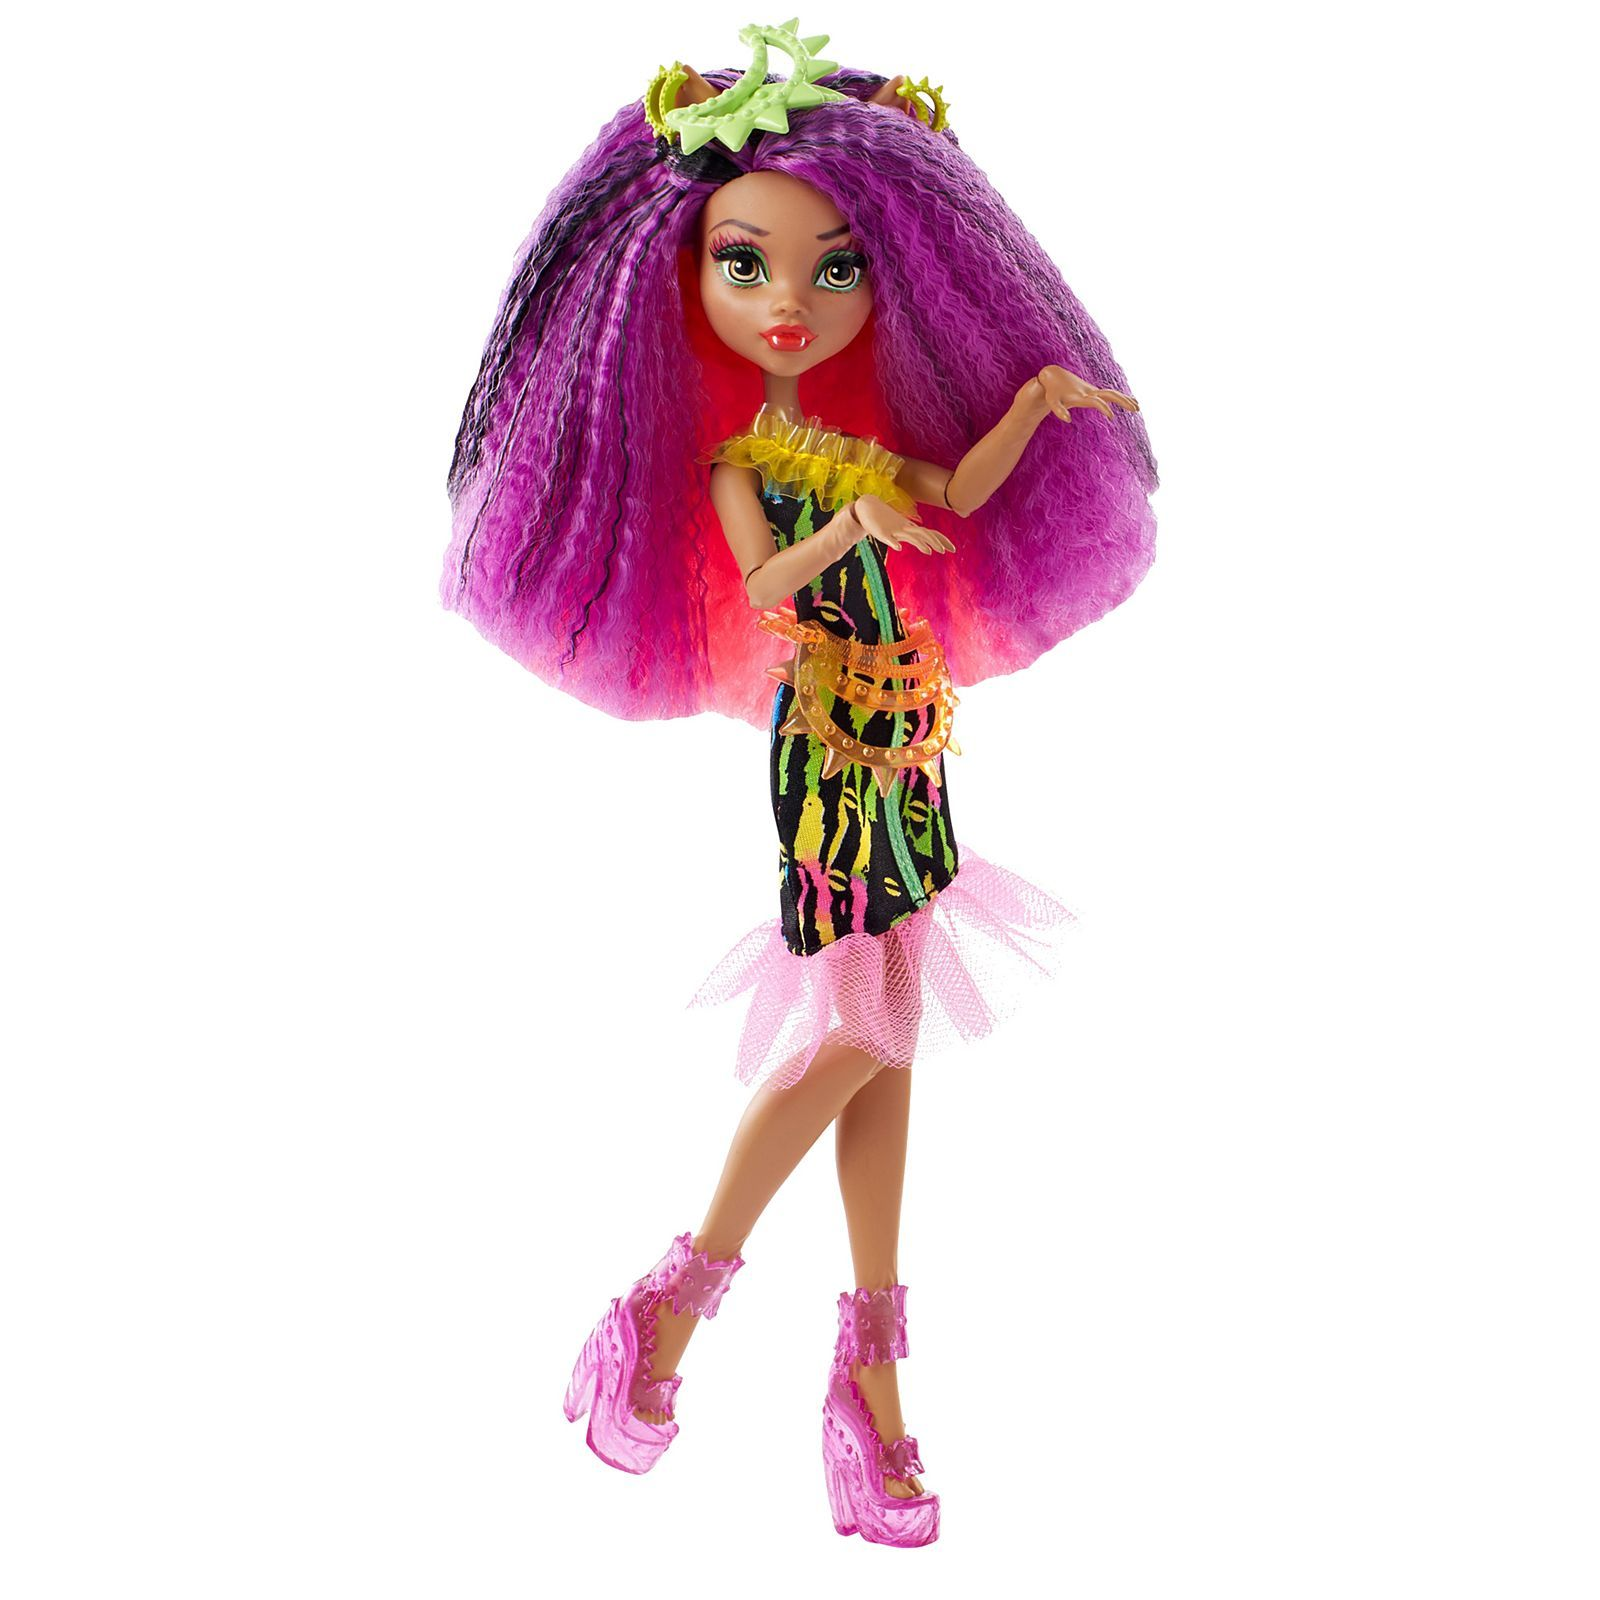 Monster high electrified monstrous hair ghouls clawdeen - Clawdeen wolf pyjama party ...